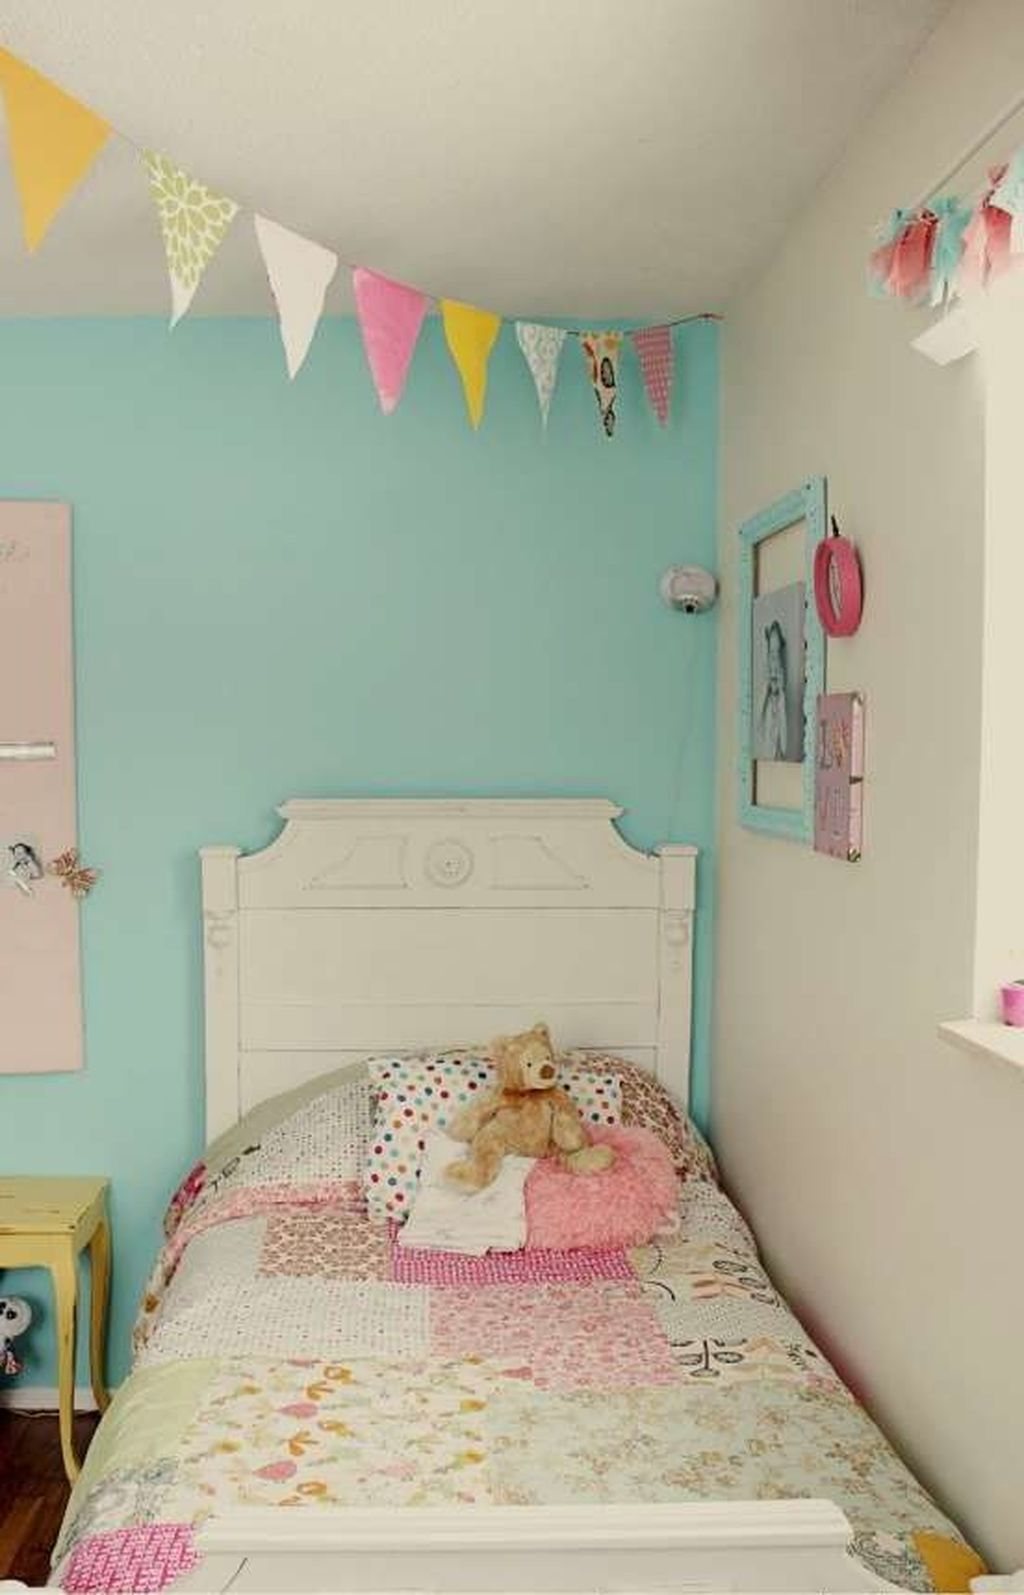 33 Perfect Toddler Girls Room Design Ideas With Painted Photo Frames In 2020 Girls Bedroom Colors Girls Bedroom Paint Girls Room Paint